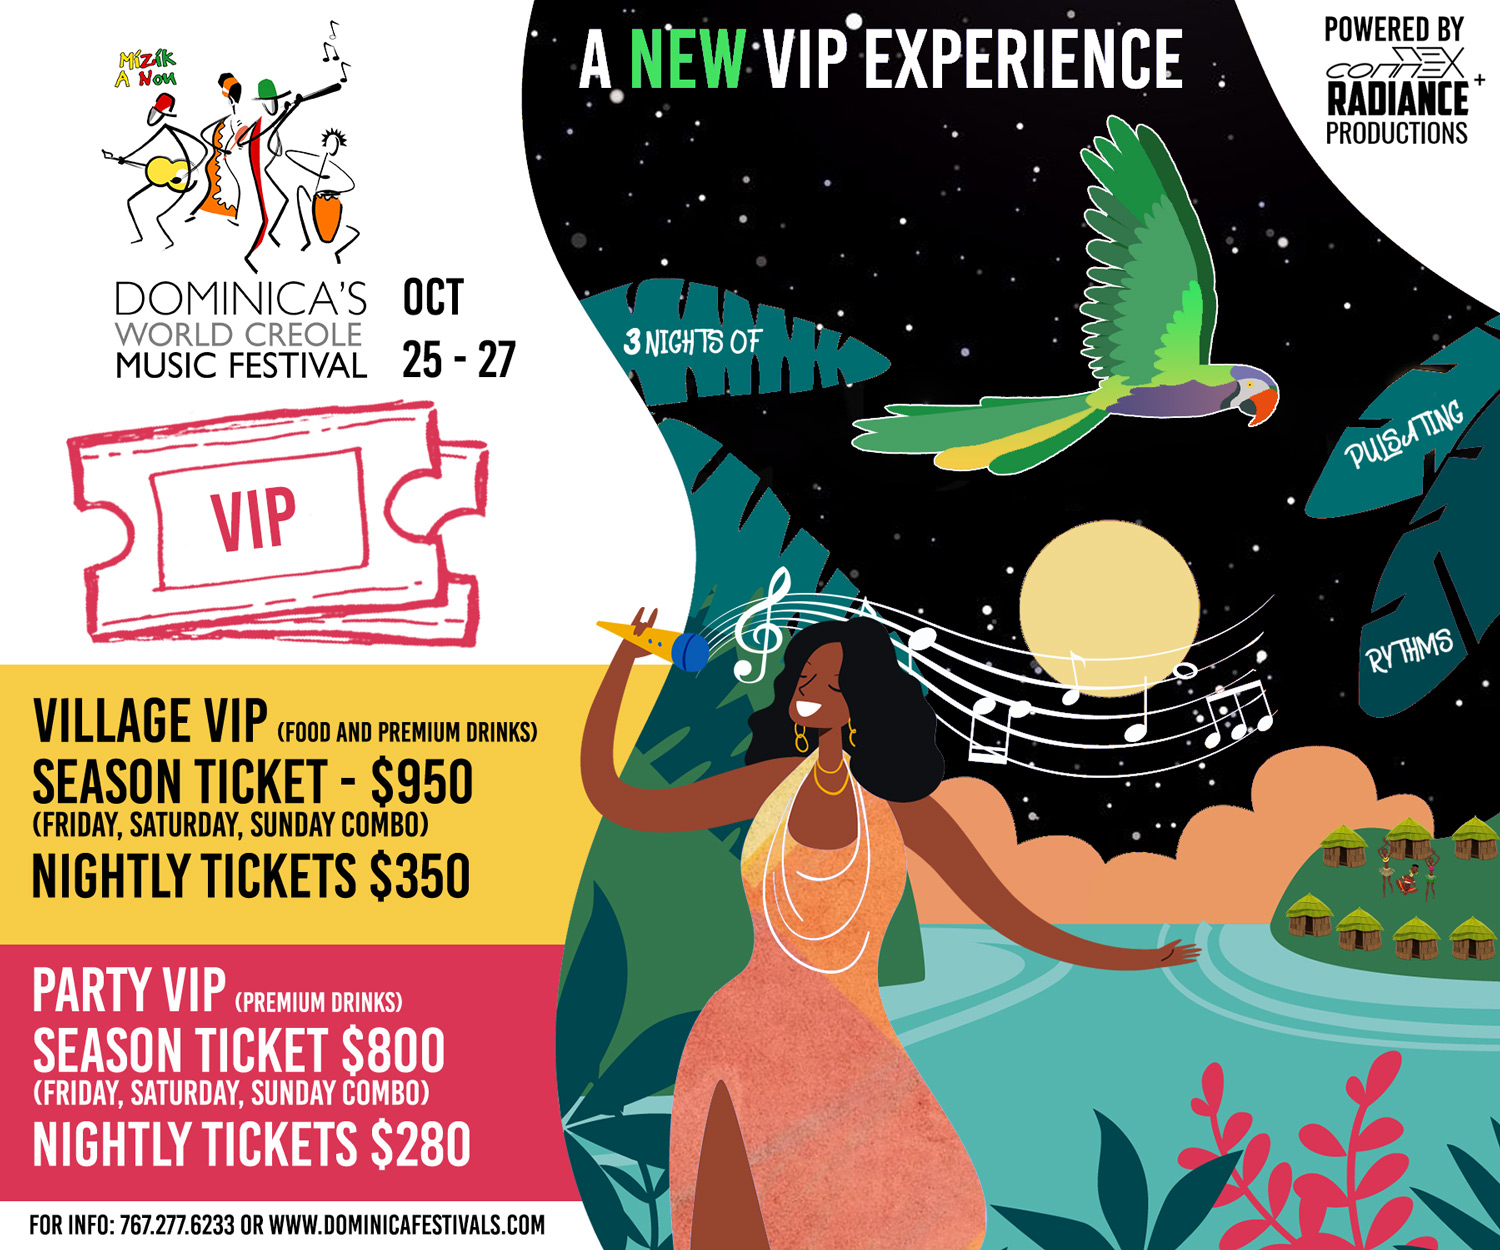 Party VIP - SEASON PASS (World Creole Music Festival 2019) - First In Line